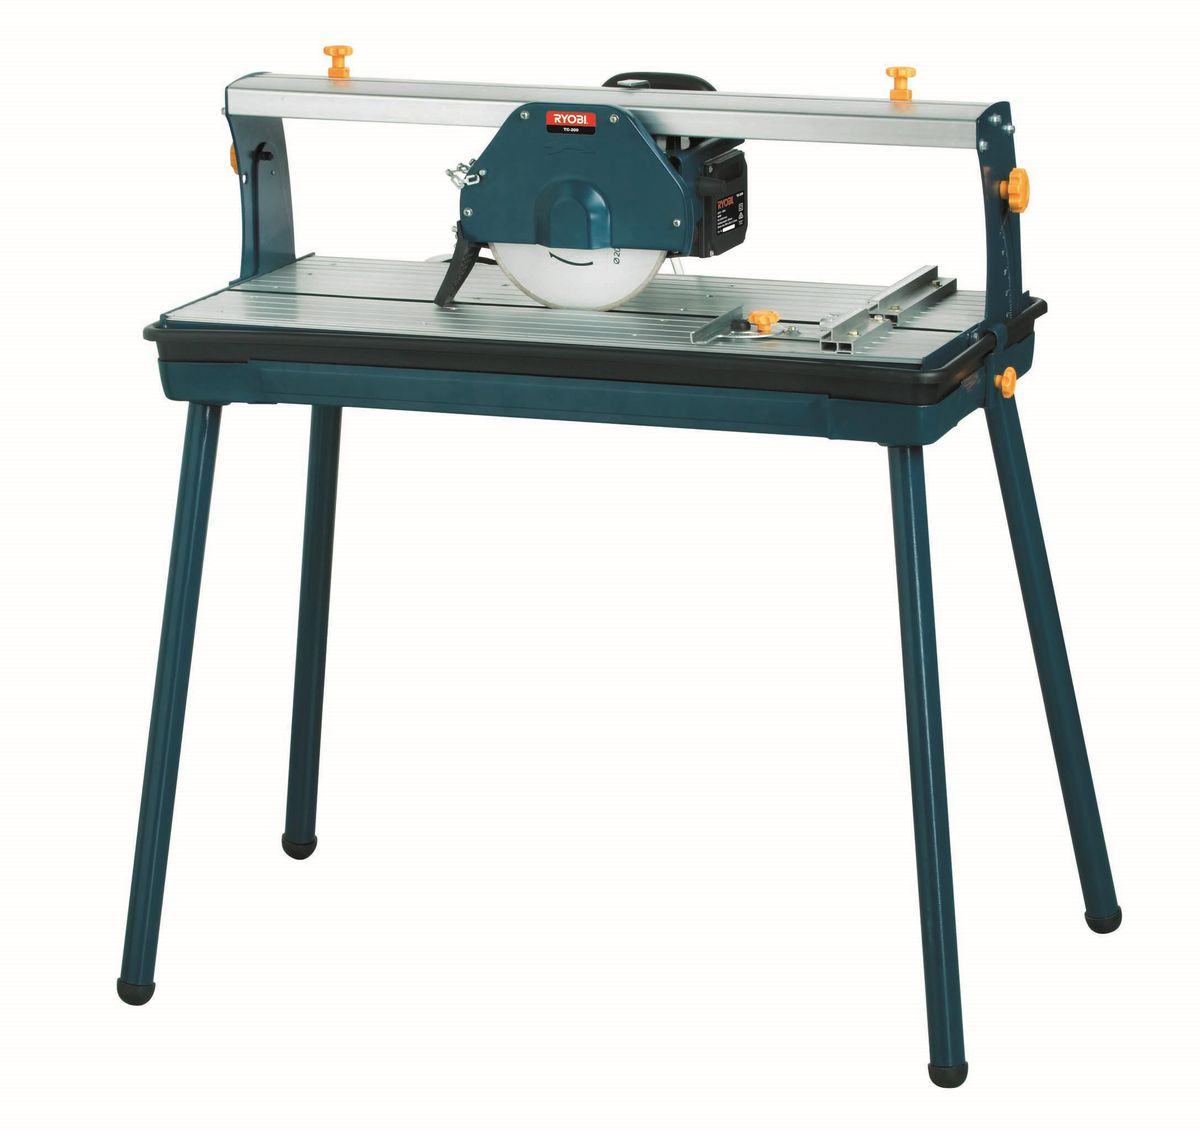 Ryobi router table south africa best router 2017 router table in south africa 49 second hand tables greentooth Images